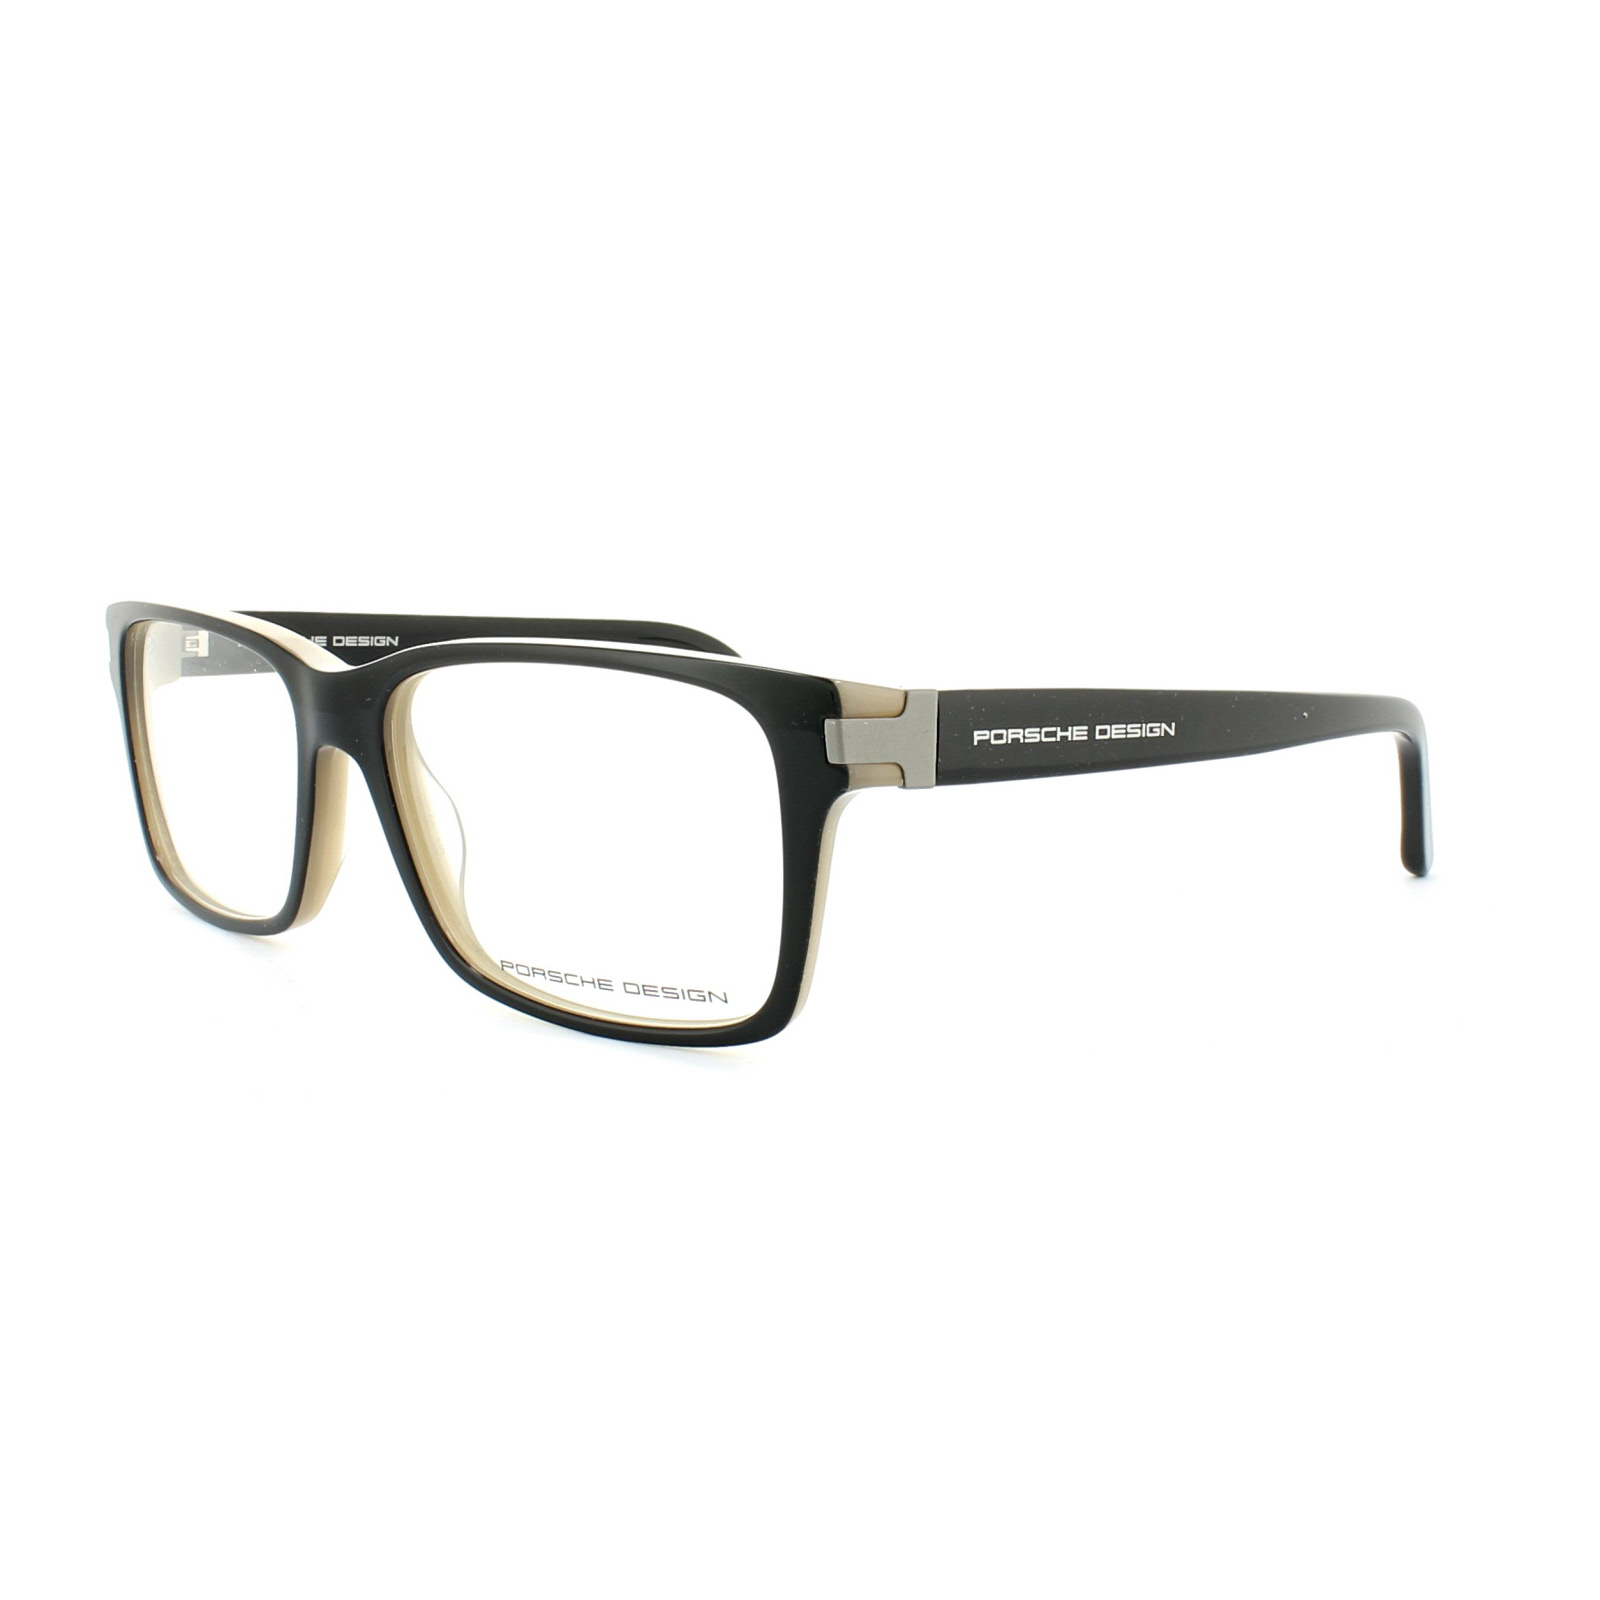 941f0a296ef Porsche Design Glasses Frames P8249A A Black 4046901729899